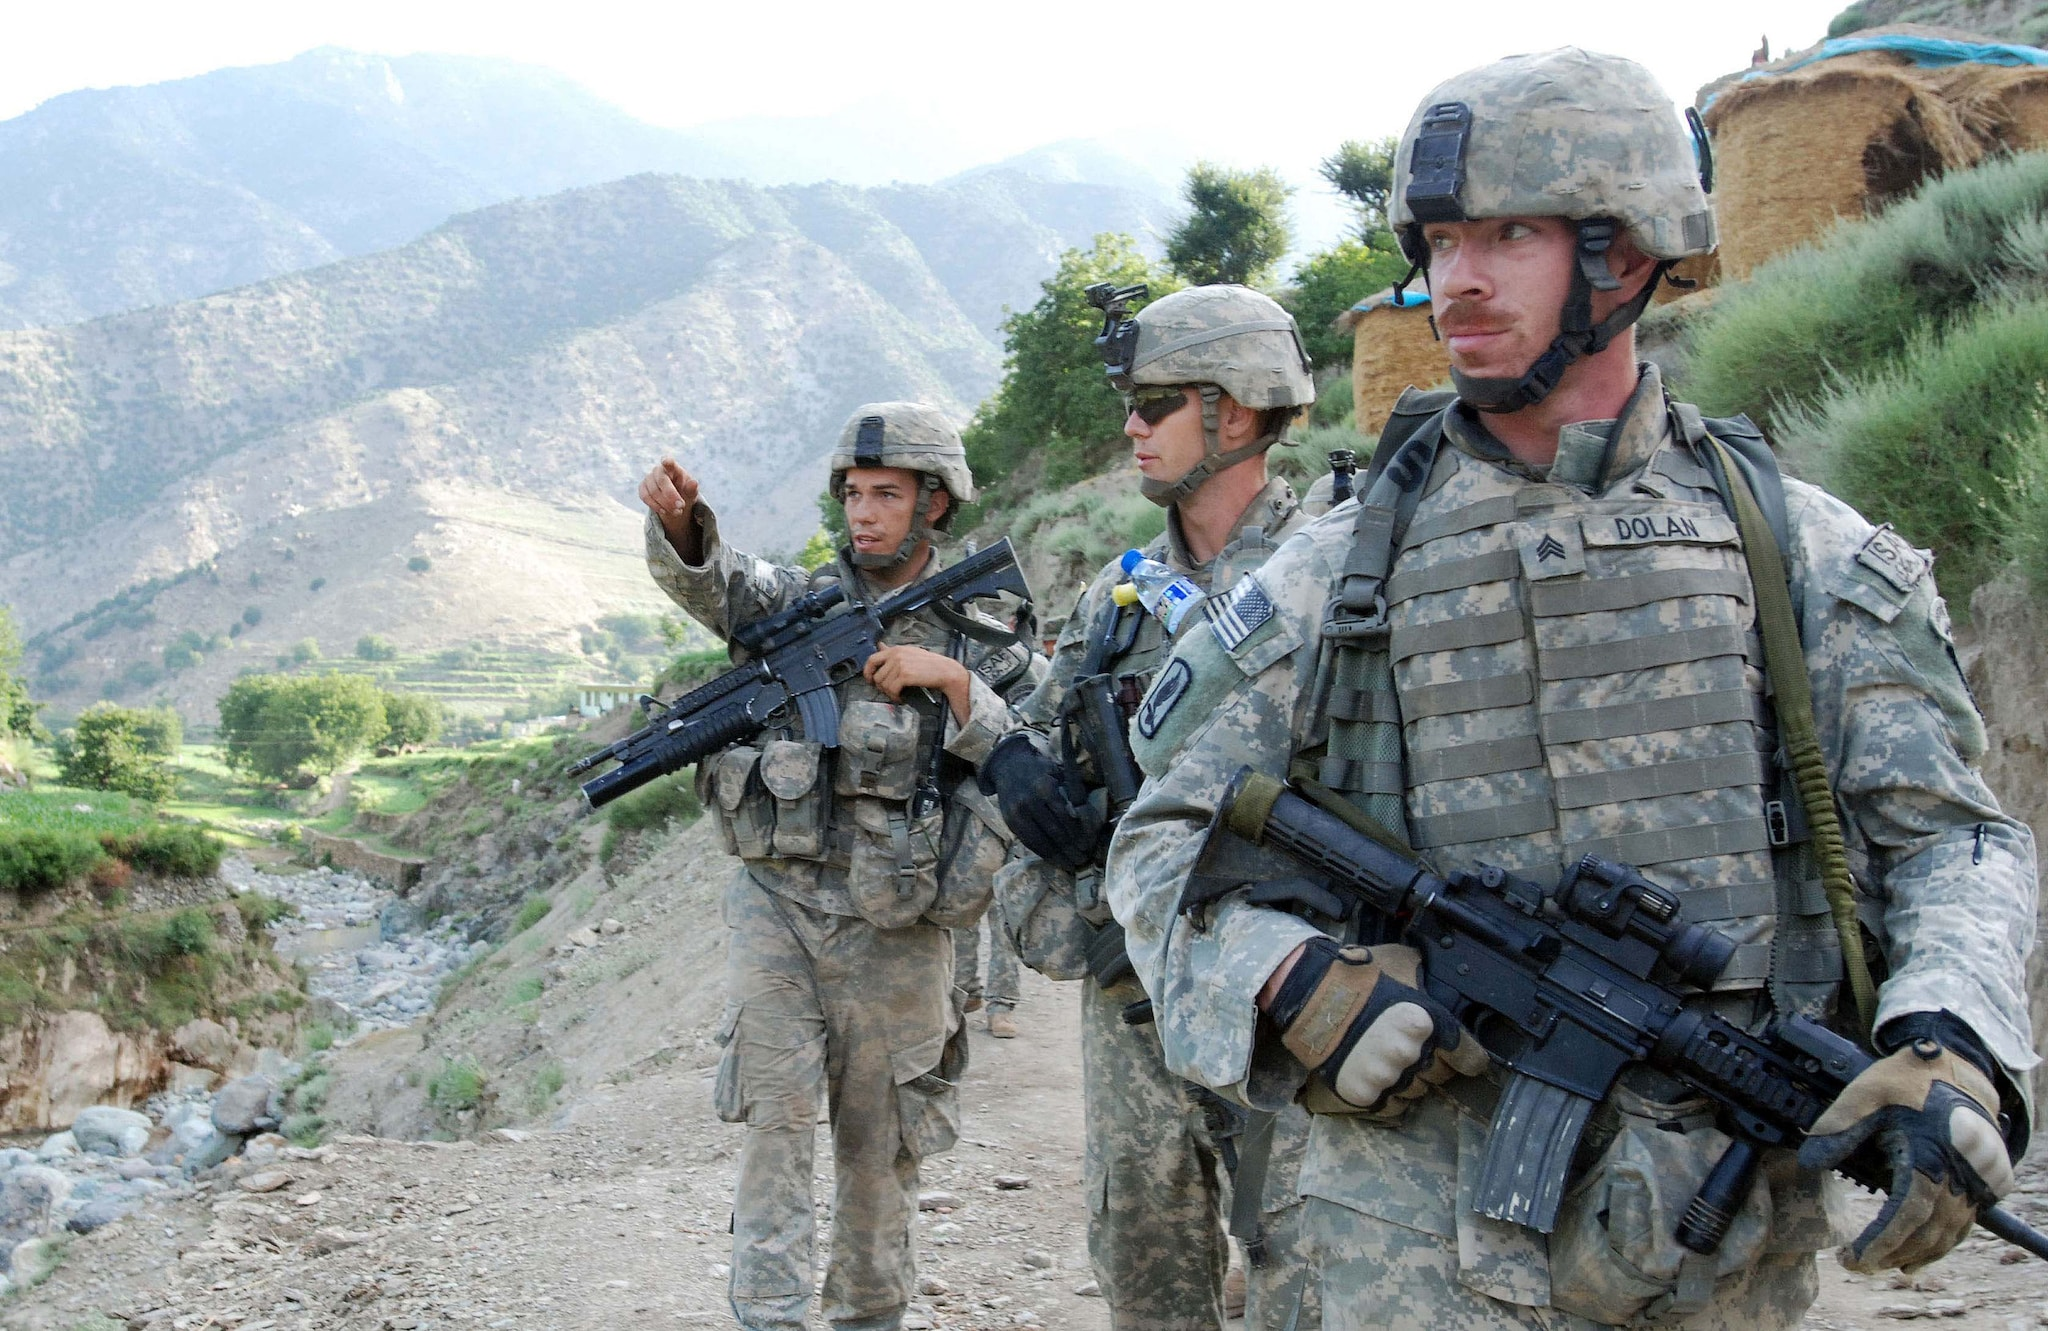 U.S. Army paratroopers from Red Platoon, Charlie Troop, 1st Squadron, 91st Cavalry Regiment (Airborne) navigate to Observation Post Chuck Norris in Dangam, Afghanistan on July 25, 2007, in Dangam, Afghanistan.